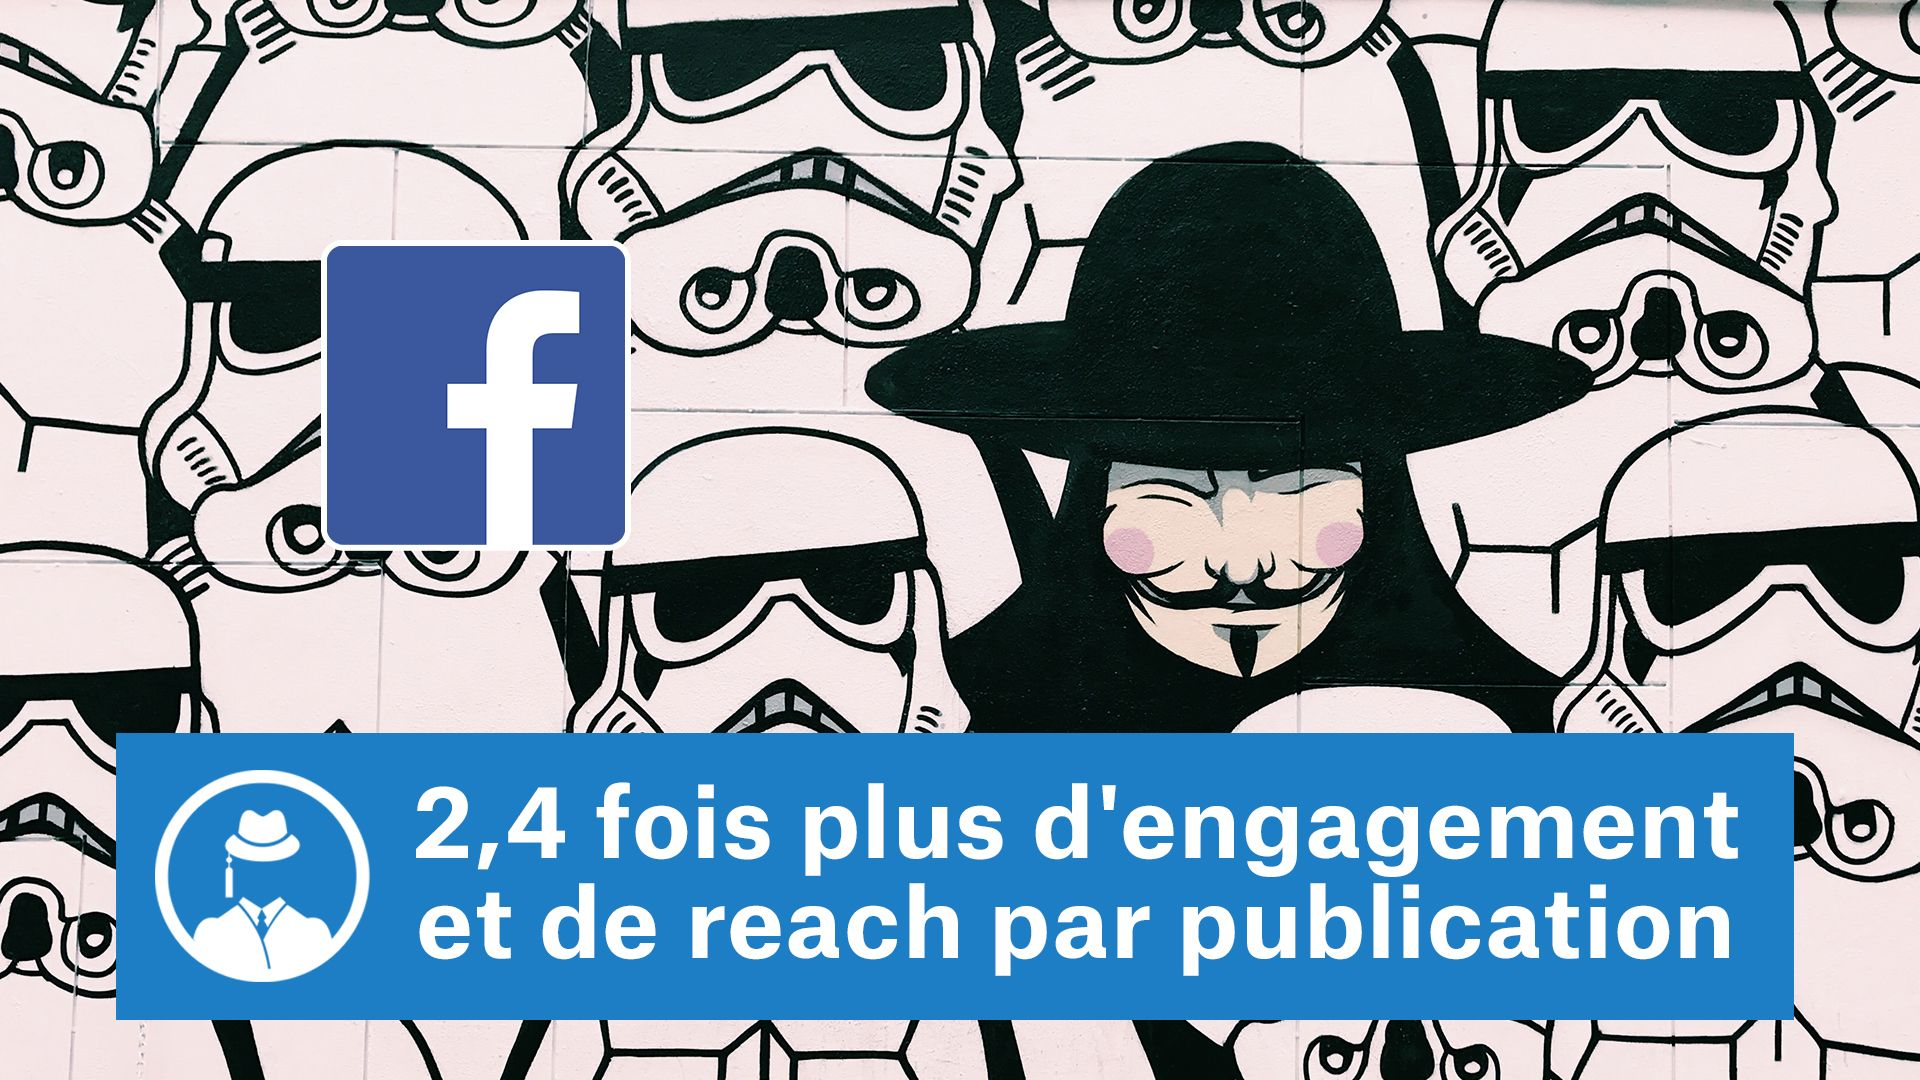 2,4 fois plus d'engagement et de reach par publication #GrowthHacking #WebMarketing #FormationGrowthHacking #CentreDeFormationFrance #TunnelAARRR #AARRR #SocialMedia #CommunityManagement #SEO #MarketingDigital #SiteWeb #Facebook